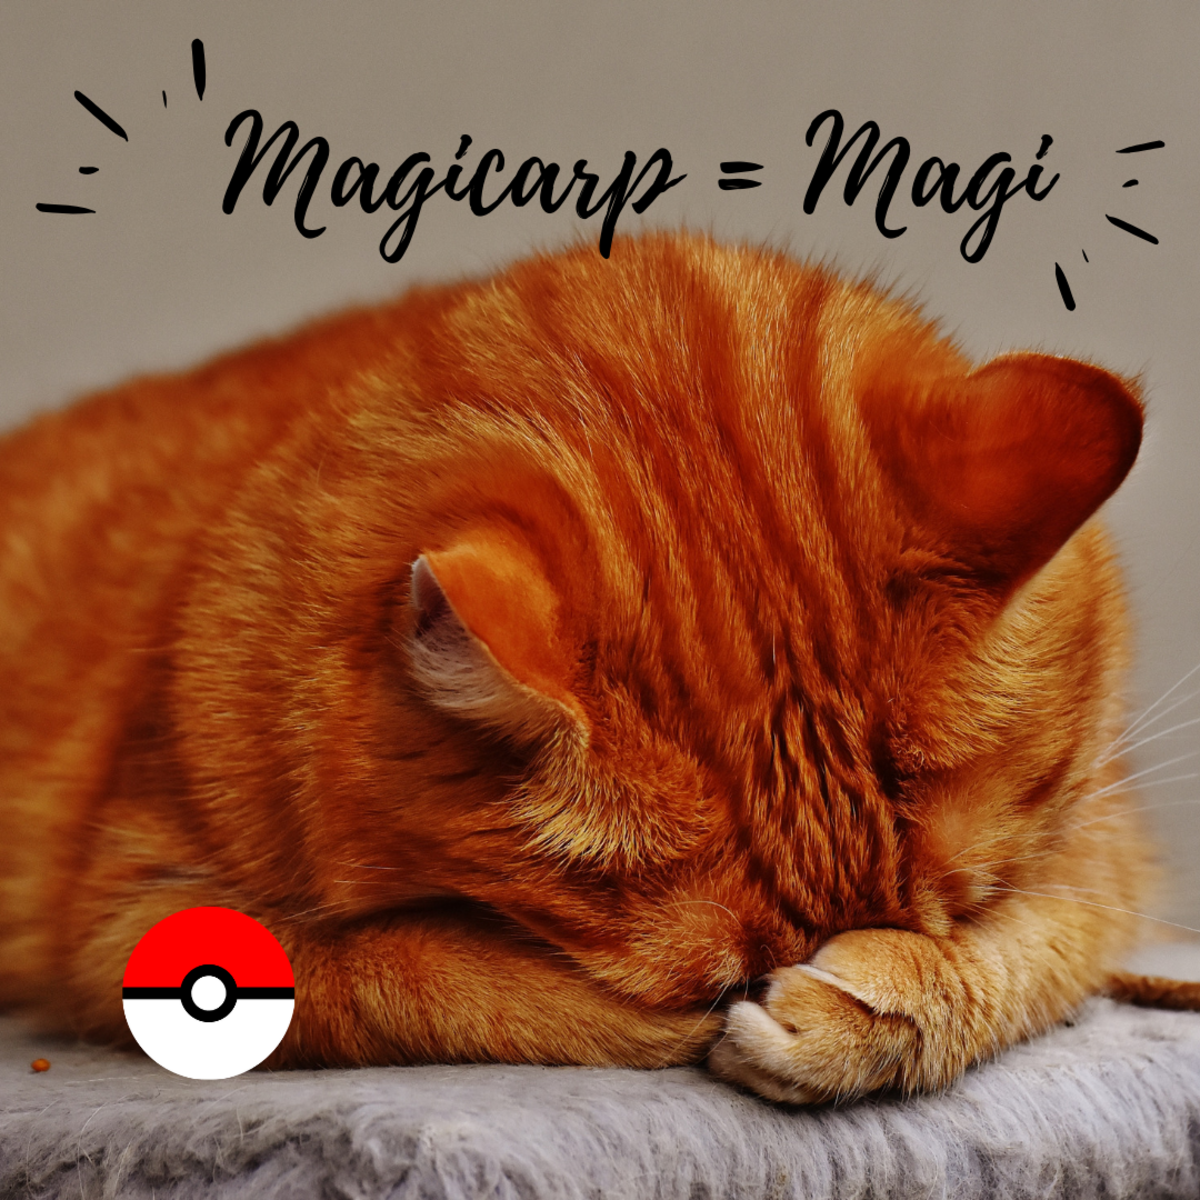 Is she a Maggy, Maggie, or Magicarp?